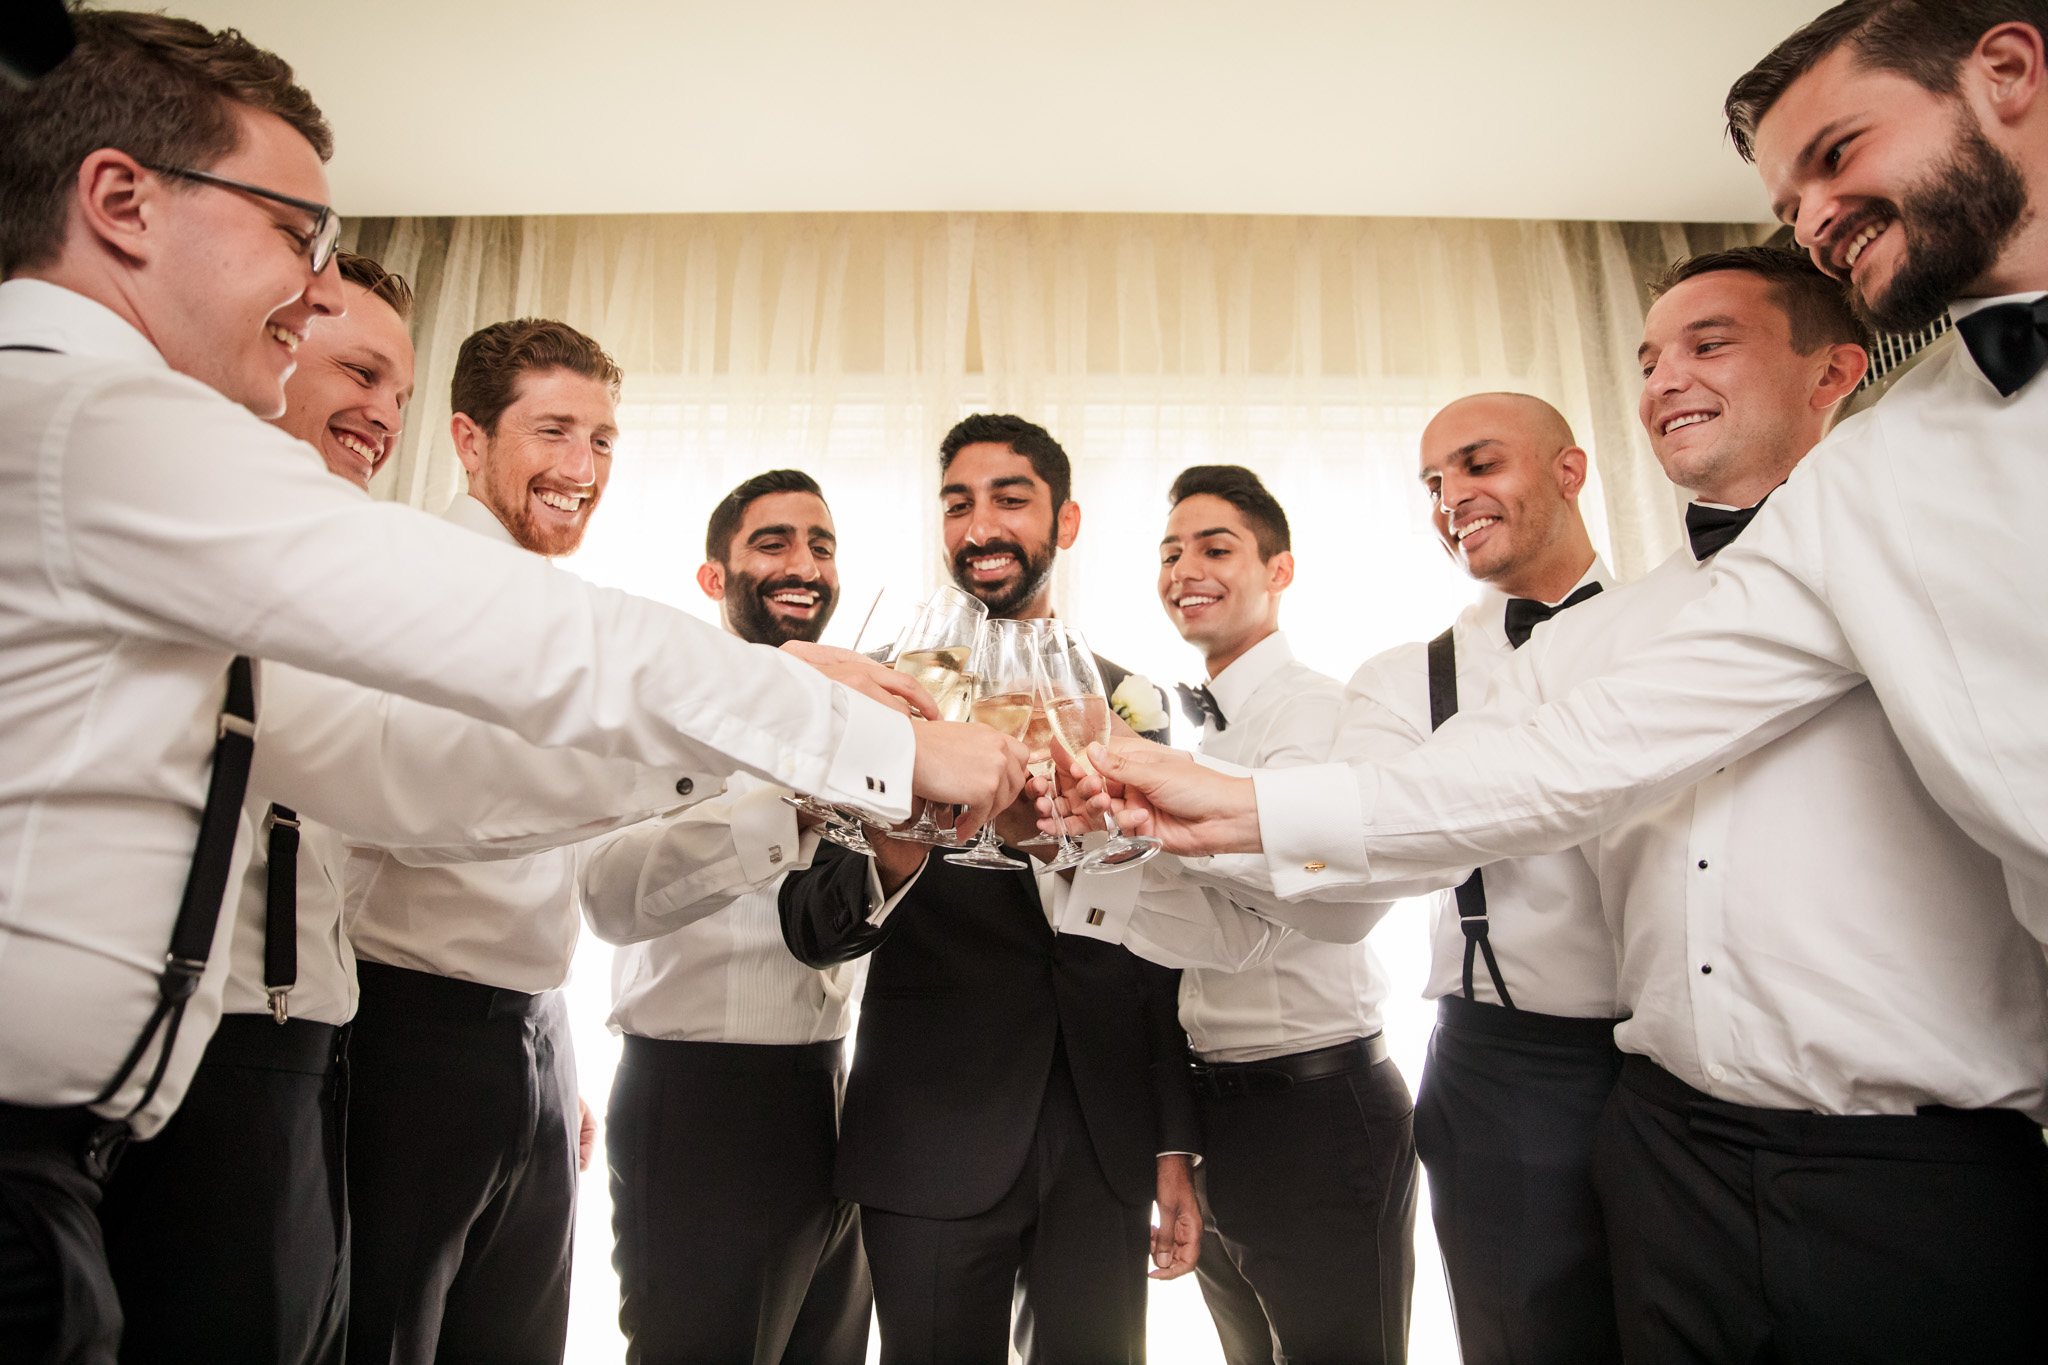 032 ritz carlton laguna niguel indian groomsmen wedding photography